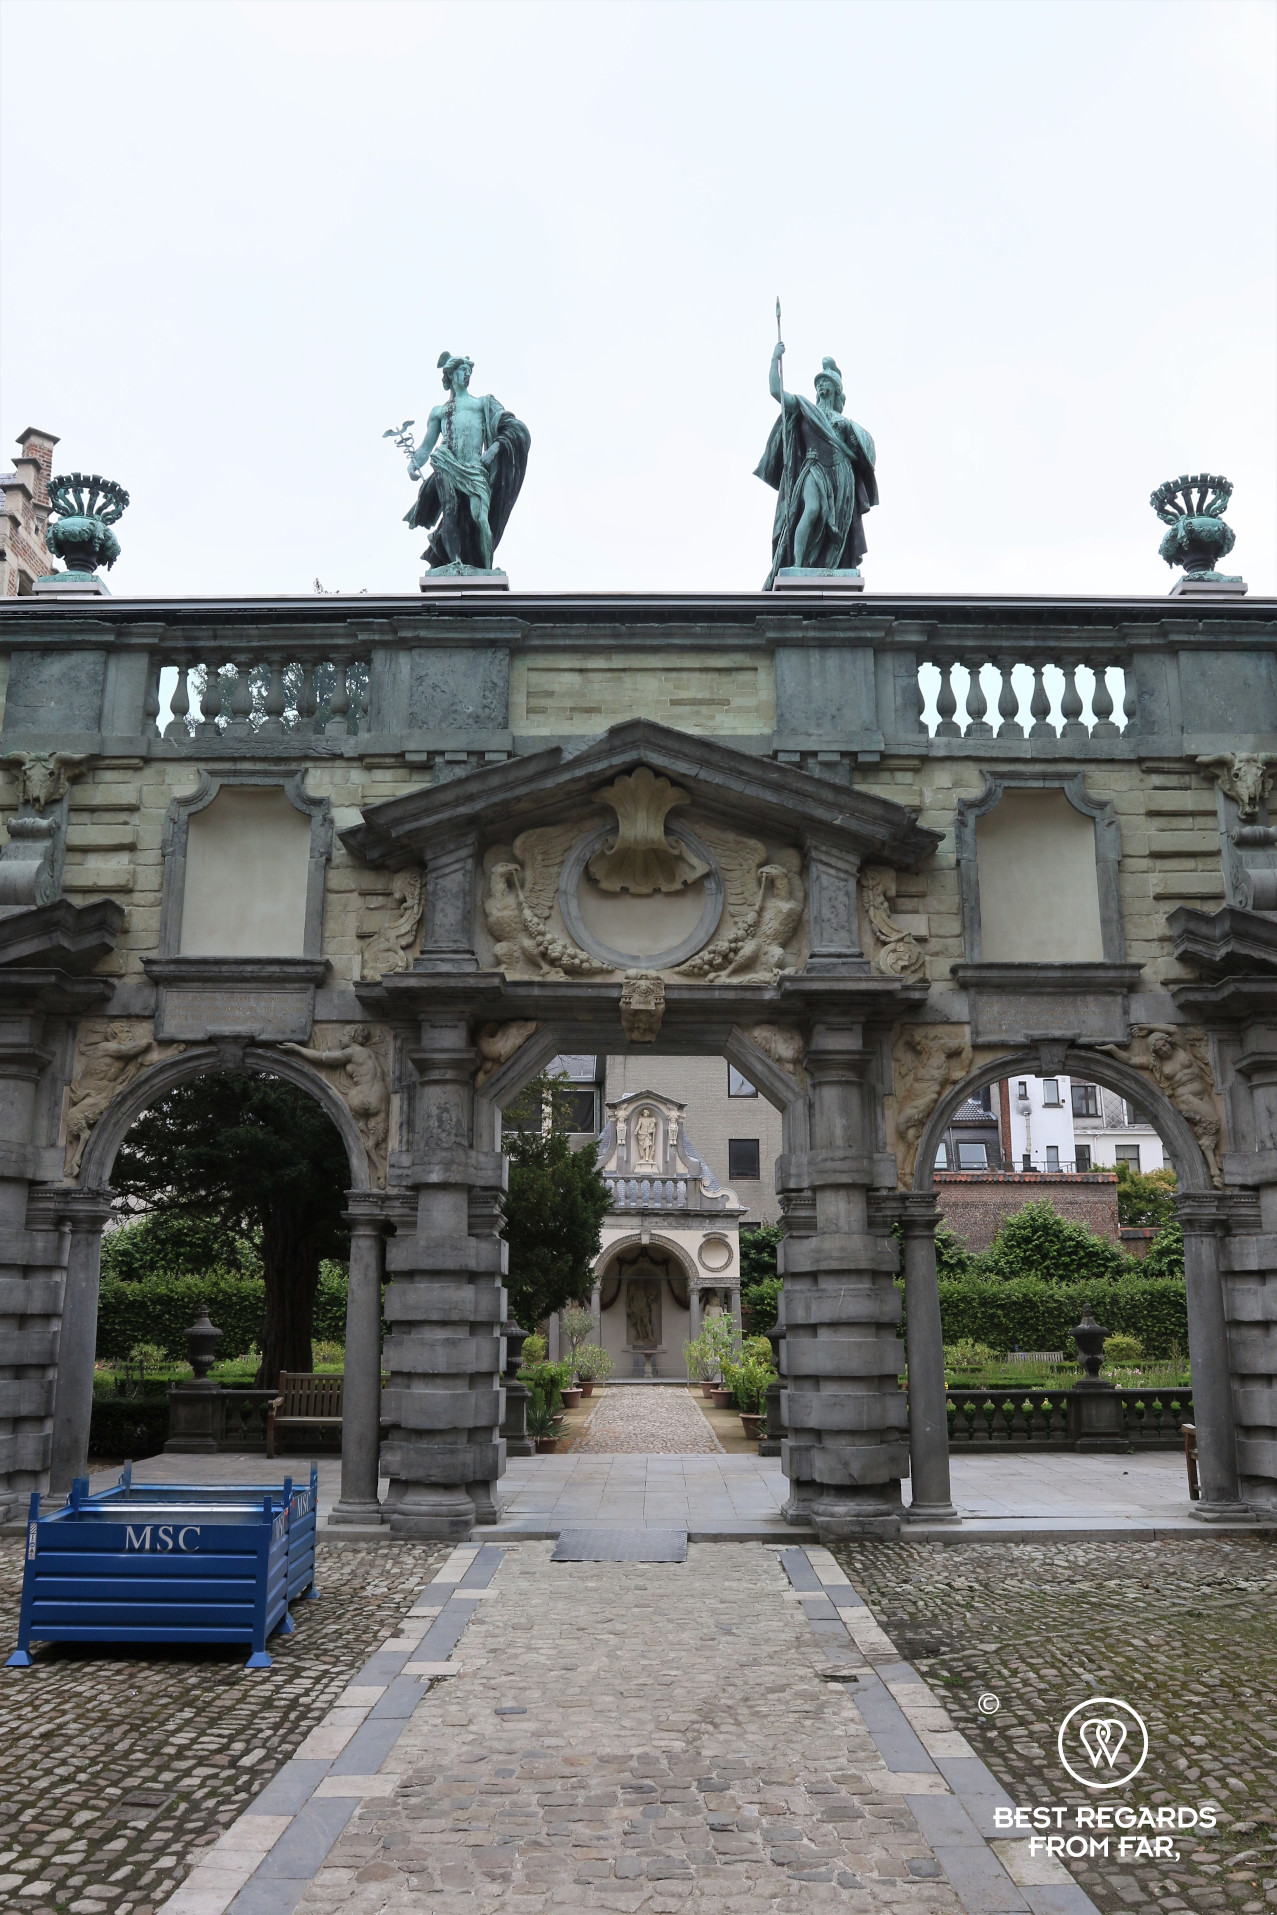 Portico designed by Rubens with two Roman deities, Mercury on the left, the god of painters and Minerva on the right, the goddess of wisdom, Rubens' House, Antwerp